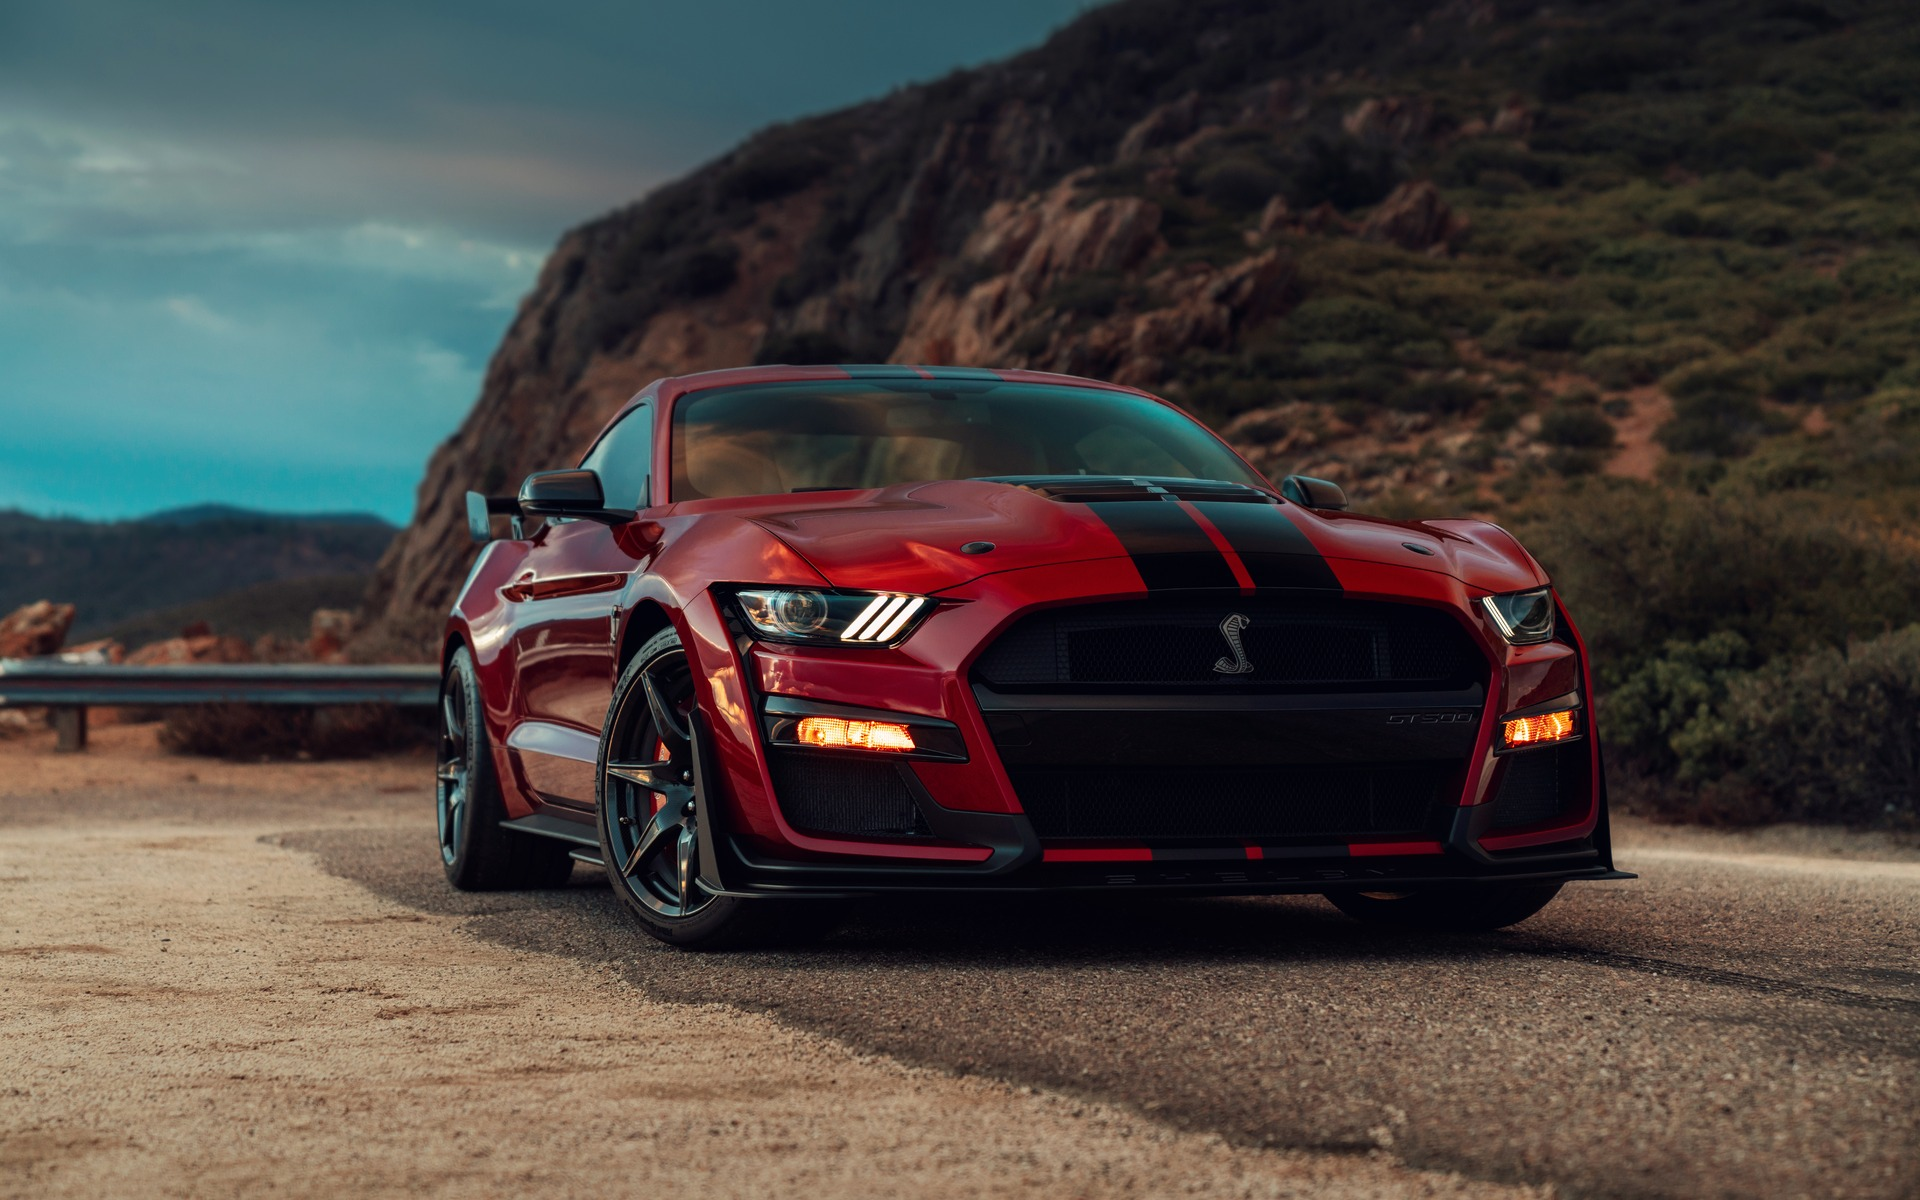 2020 Ford Mustang Shelby Gt500 700 Hp And A Speed Limit The